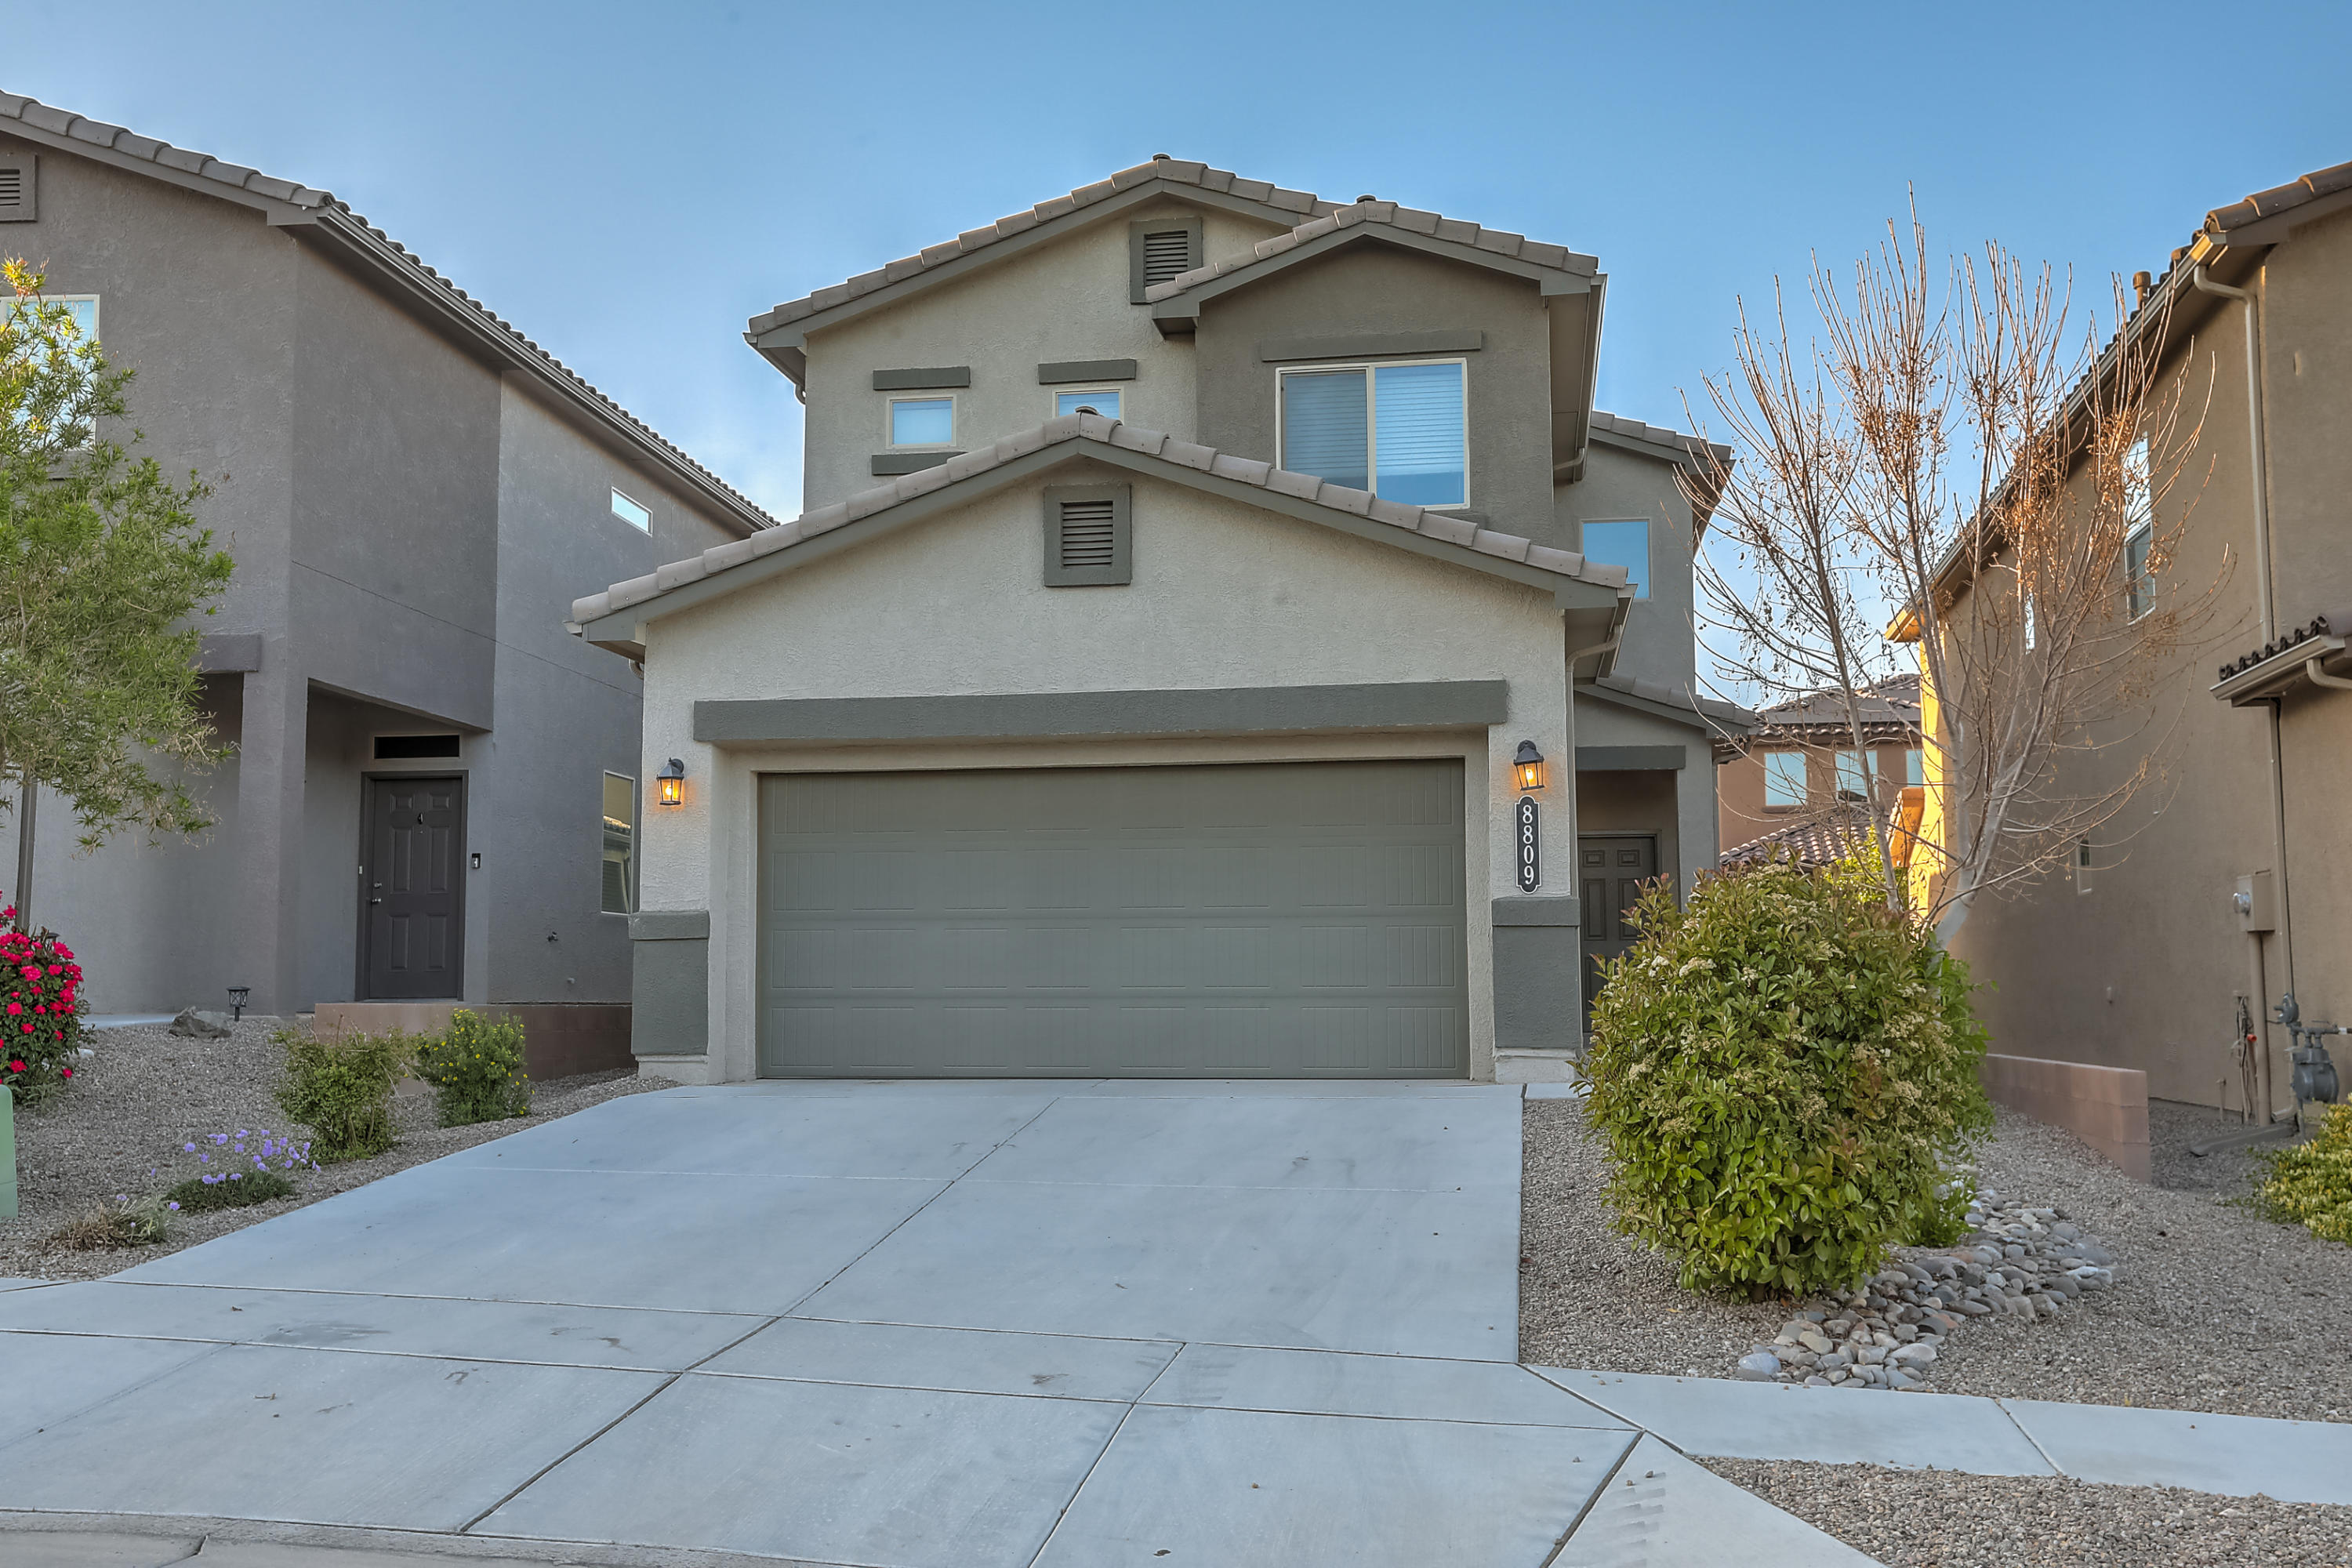 This home is ready for new owners! This DR HORTON built in 2016 has refrigerated a/c, vinyl flooring, newer carpet, granite counter tops, stainless steel appliances and so much more! Enjoy entertaining in this open concept floor plan and large living space.  The Master suite is large with en suite featuring double vanity, walk in shower, and walk in closet. The additional two bedrooms are well sized.  Don't miss the upstairs laundry room, plus the washer and dryer stay! Enjoy the covered patio and landscaped backyard offering a slight view of the mountains.  Location offers quick access to parks, trails, and I-40. This one won't last long!